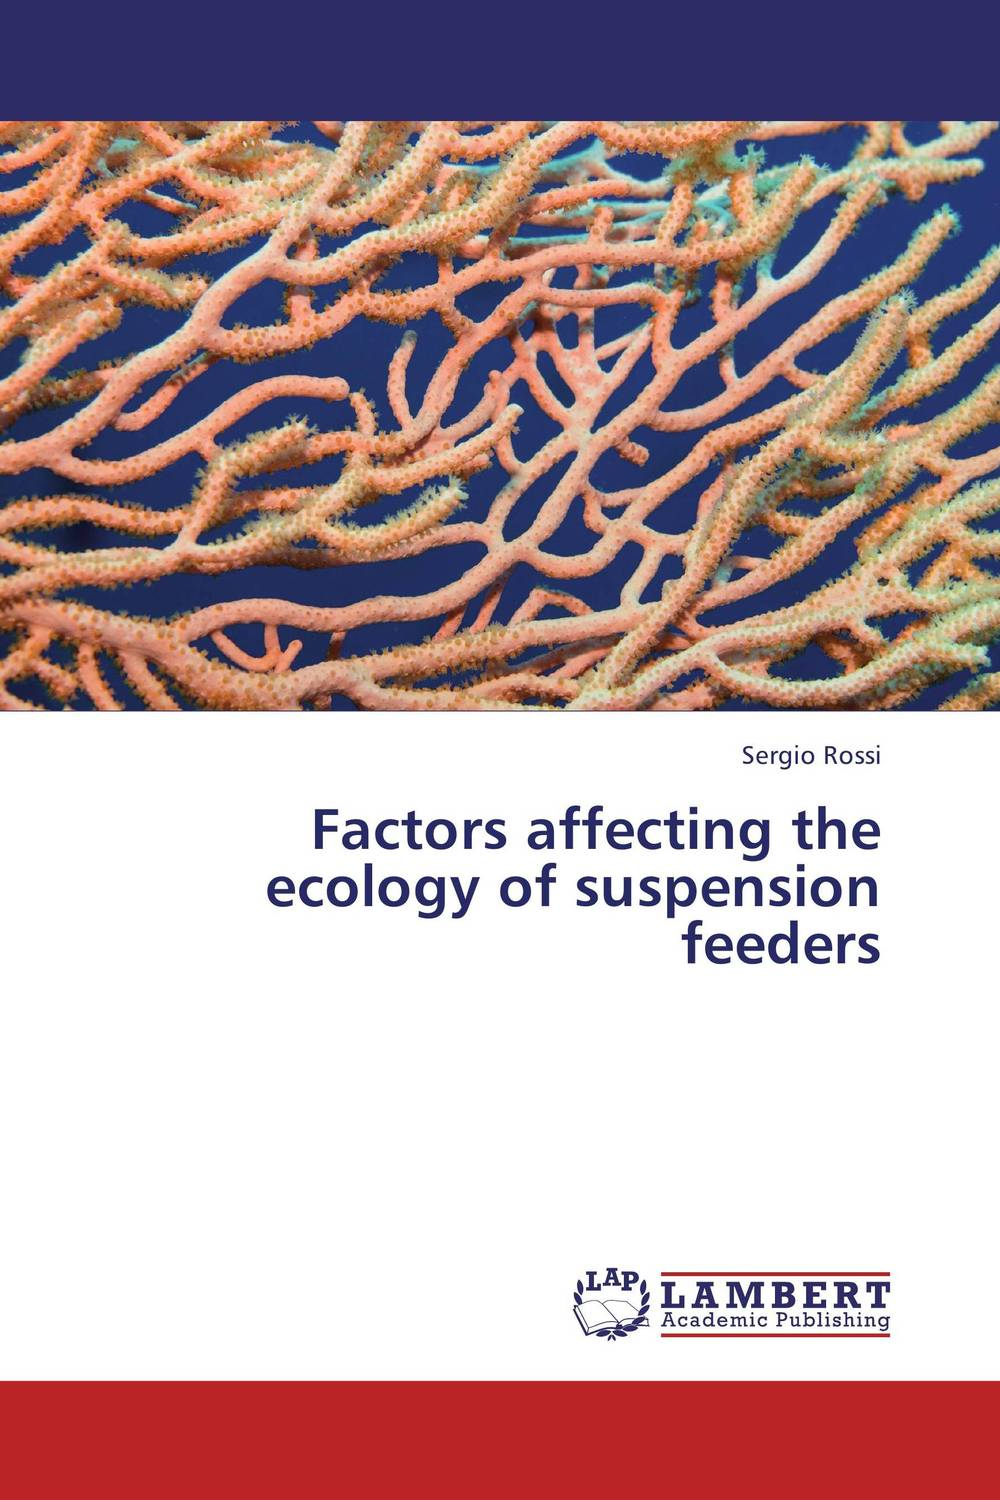 Factors affecting the ecology of suspension feeders beers the role of immunological factors in viral and onc ogenic processes